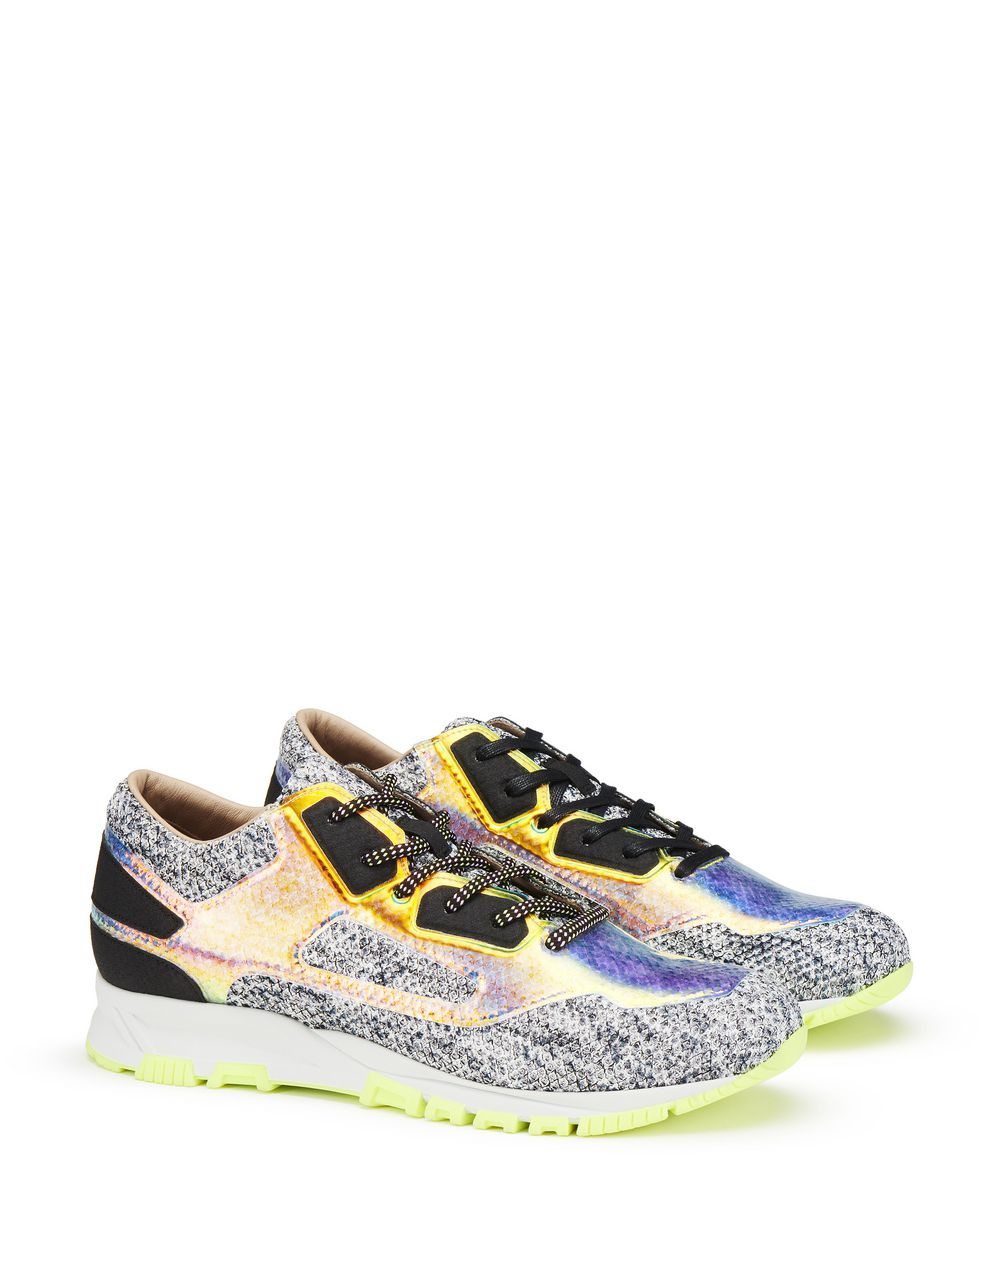 HIGH FREQUENCY RUNNING SHOE - Lanvin